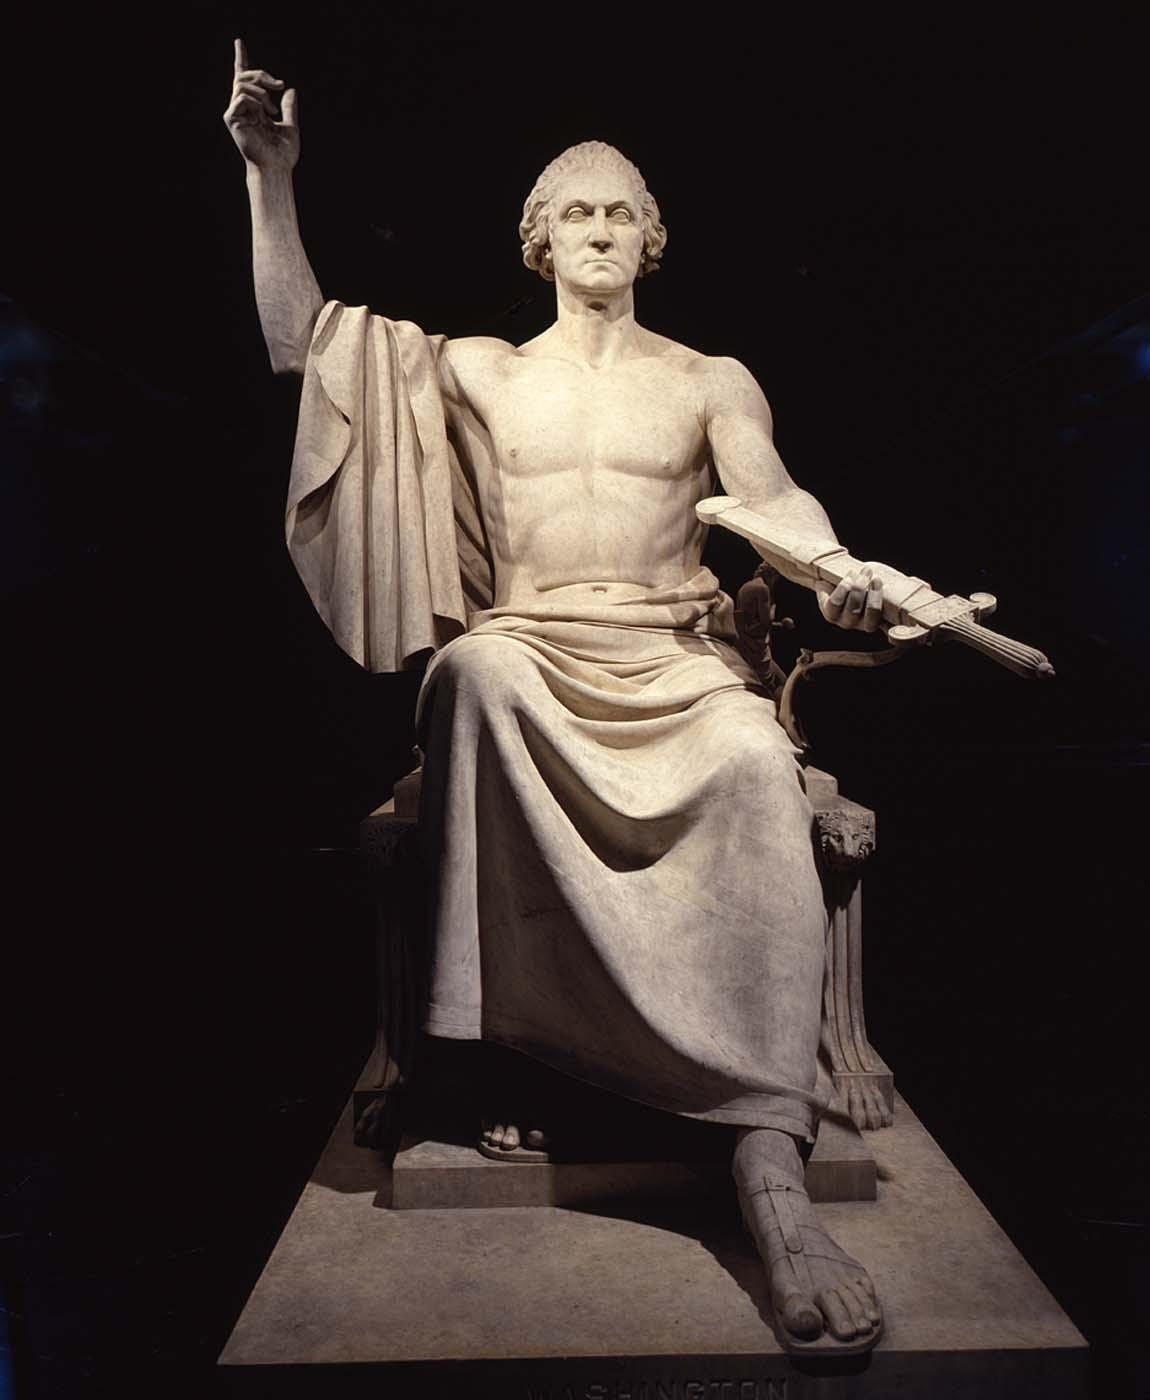 Sculpture of George Washington by Horatio Greenough (Smithsonian)